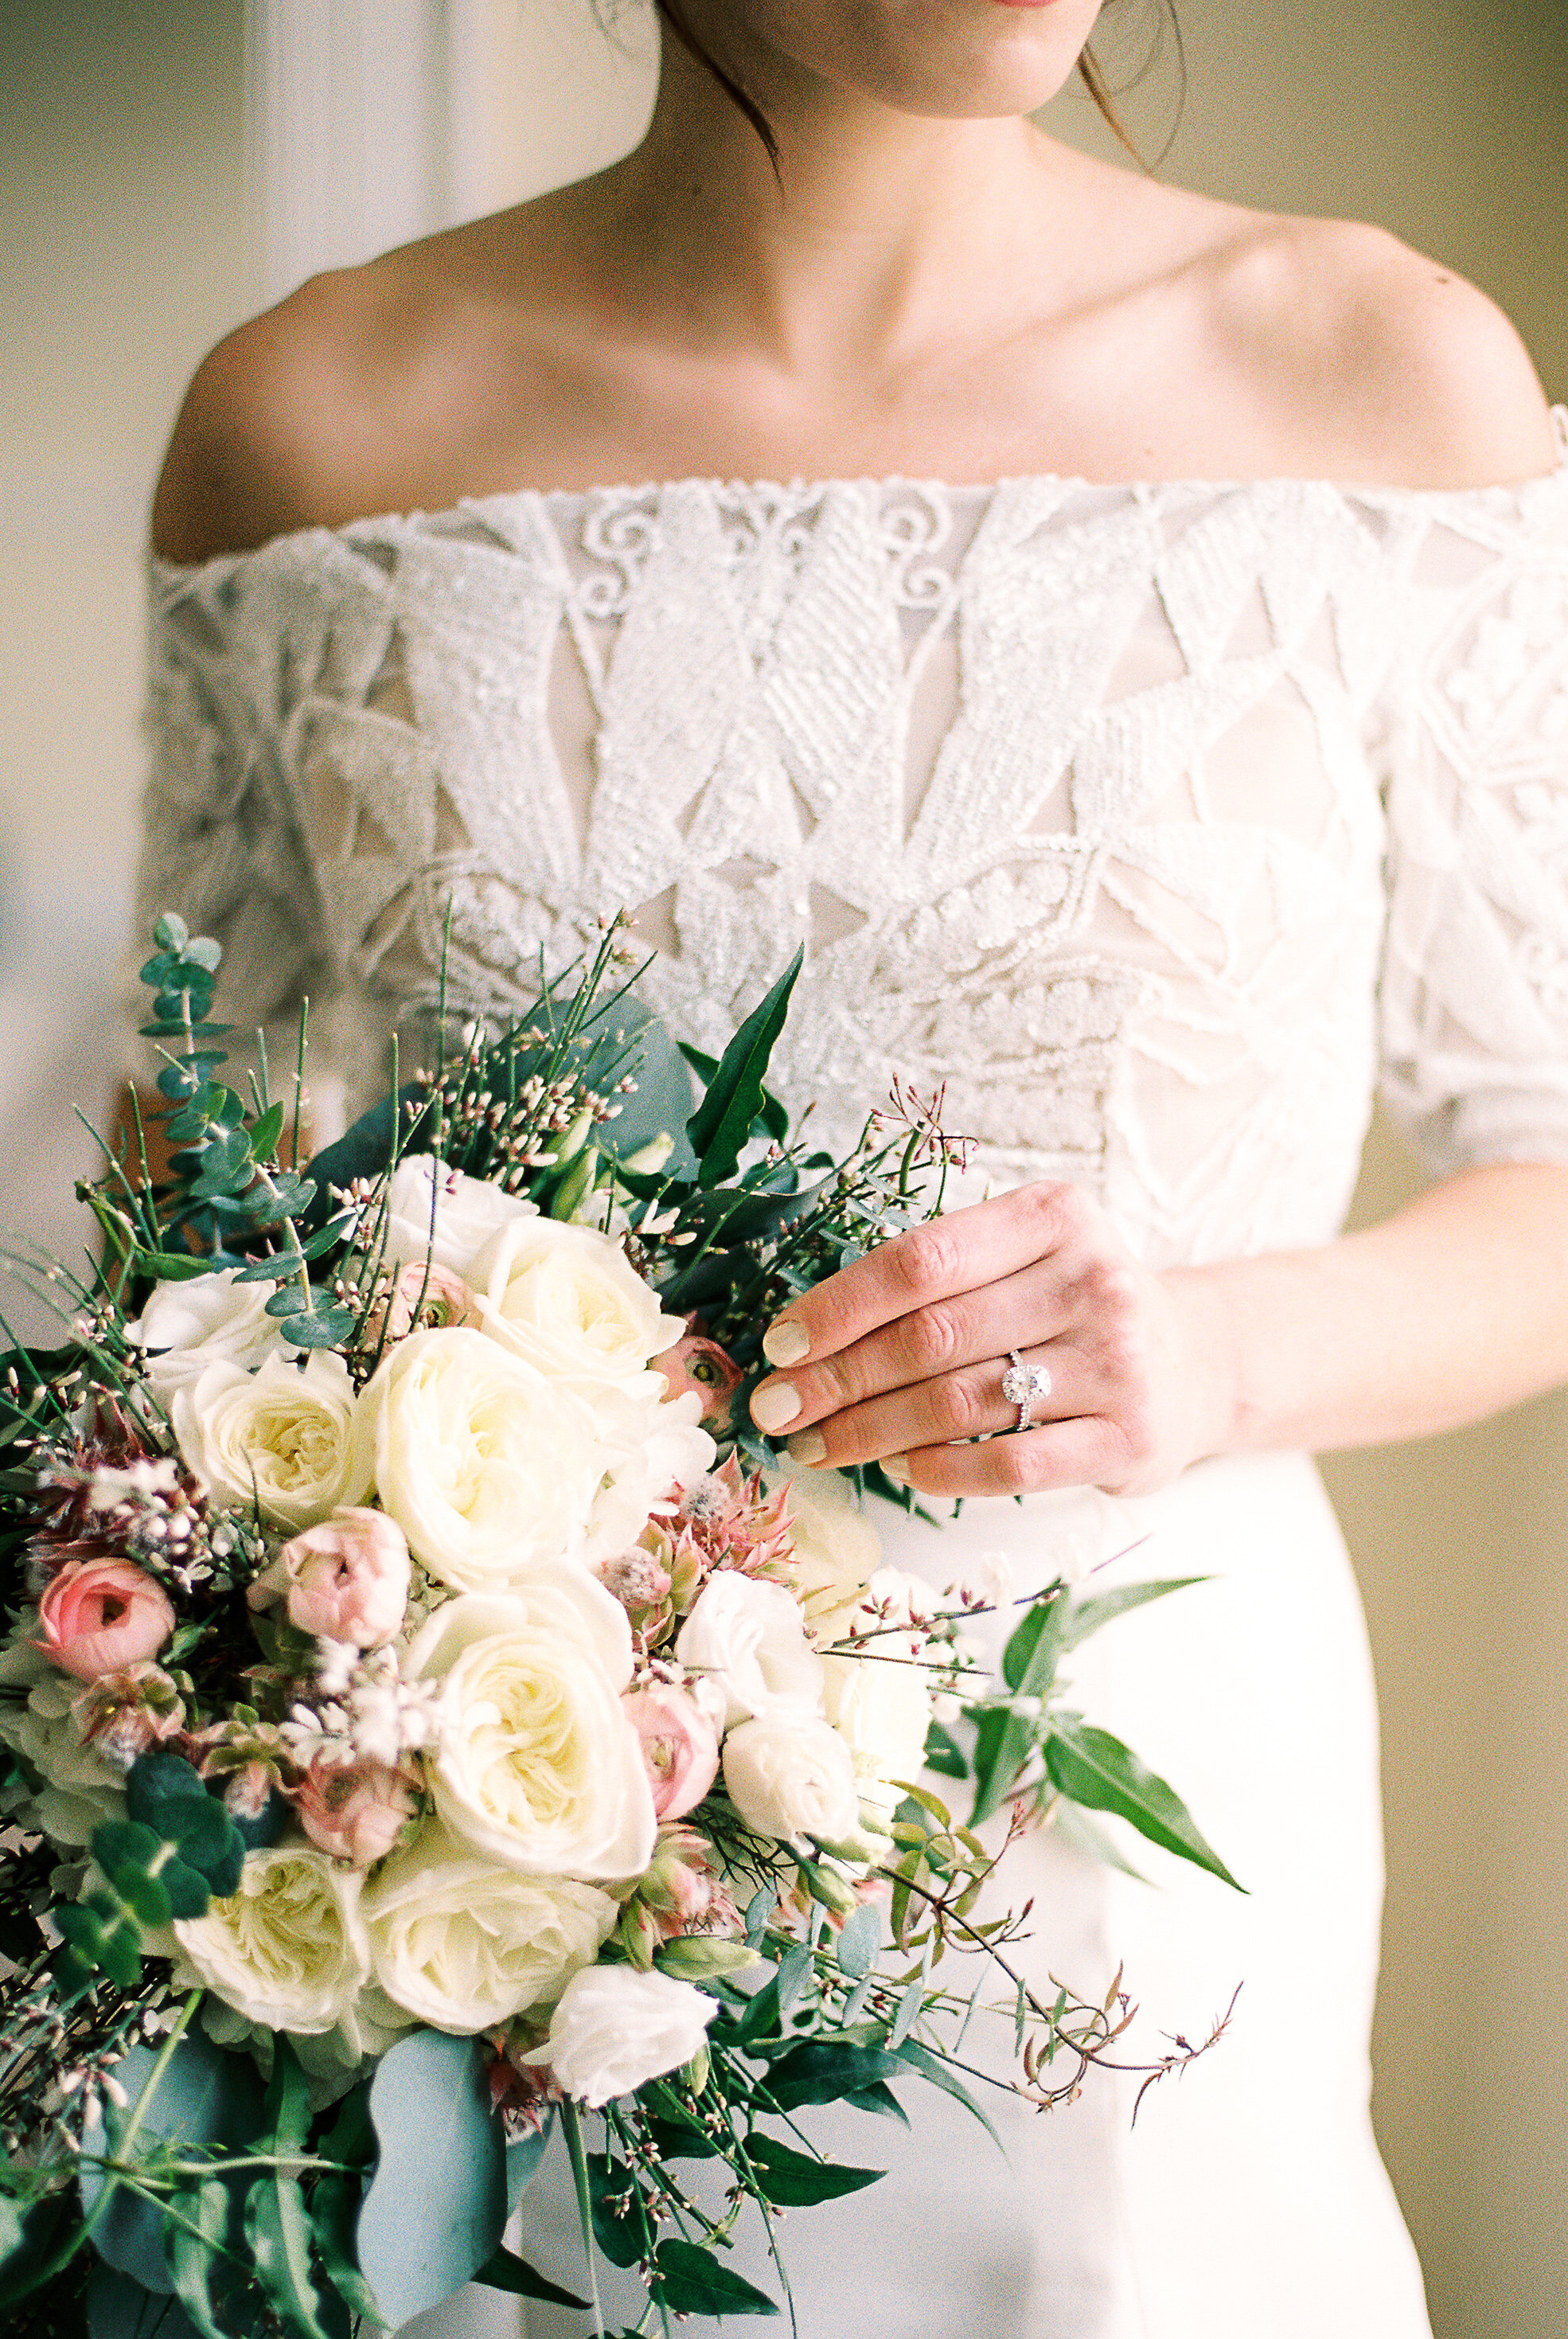 This is the Imaan Bolero. It's such a fun way to add a little bit of personalization to your wedding gown! We love the Art Deco vibes this bolero is giving!